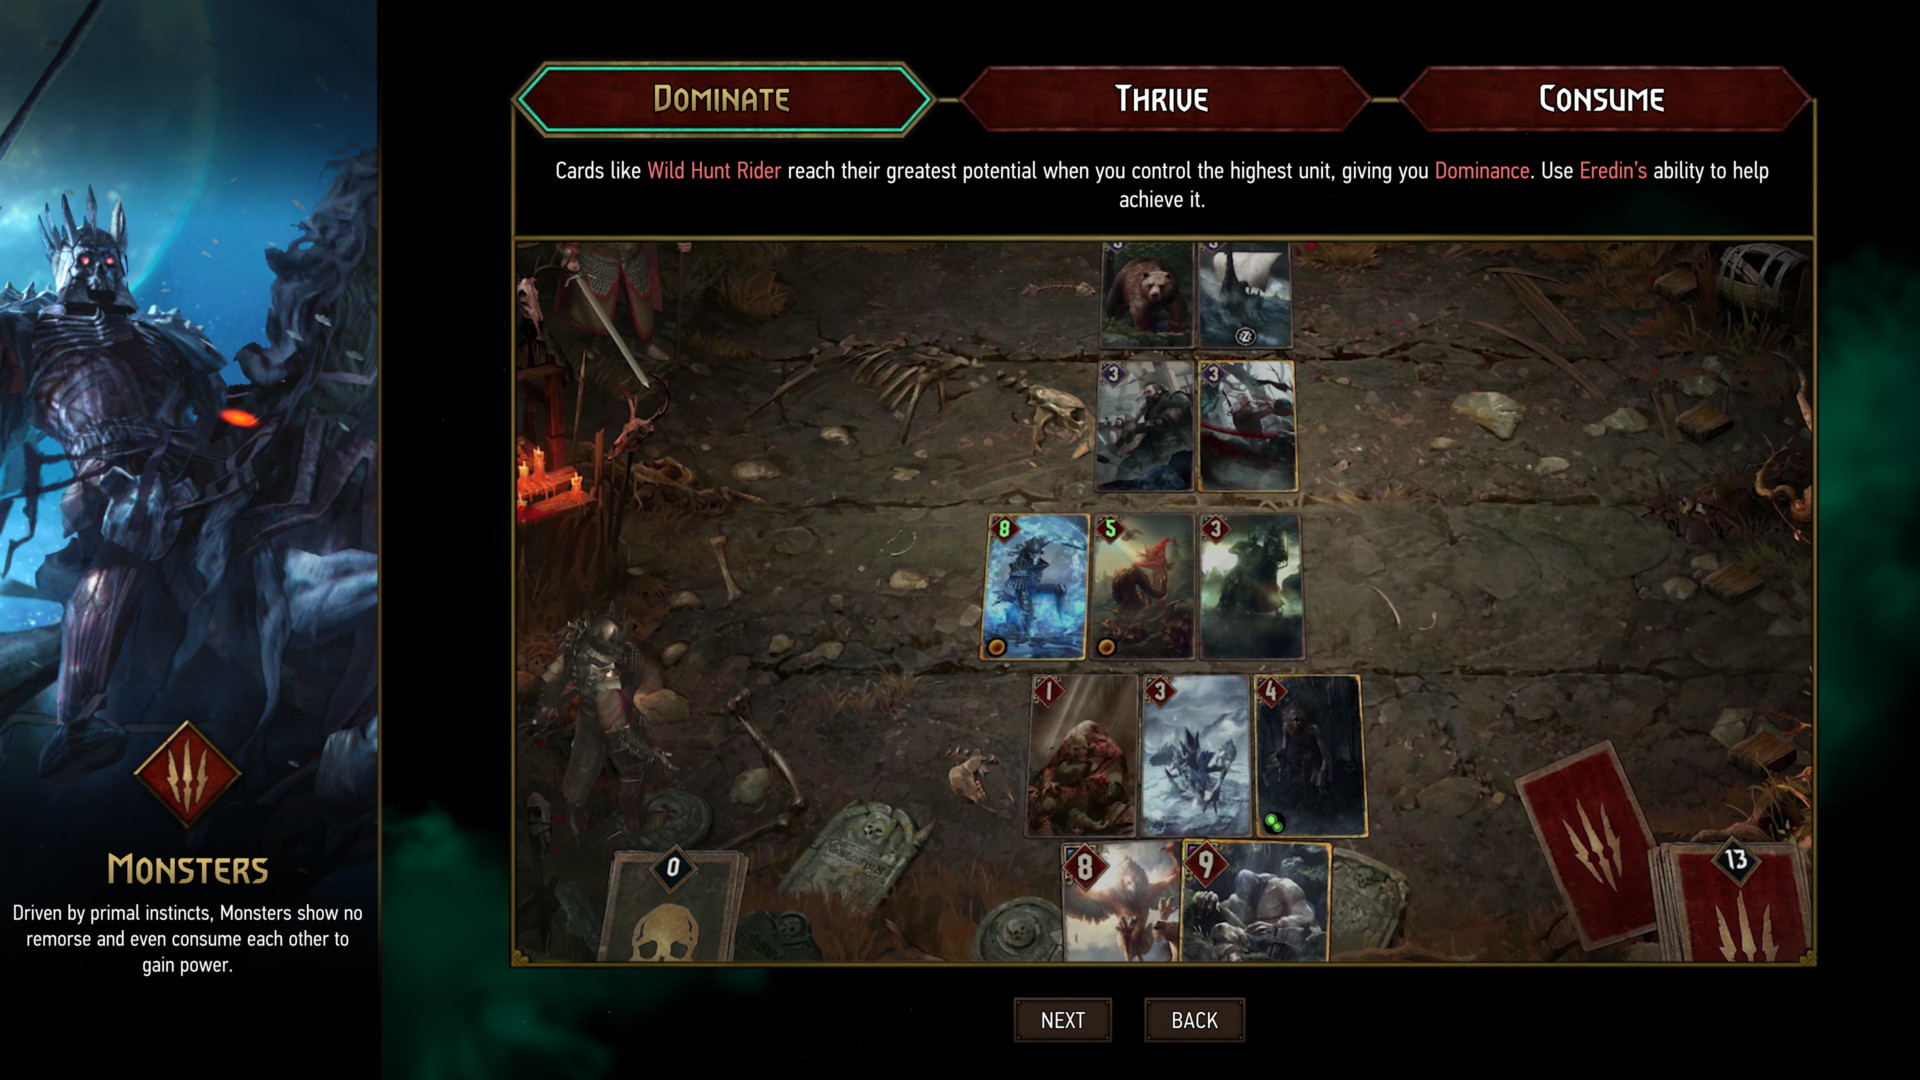 Monsters deck screenshot of Gwent: The Witcher Card Game video game interface.